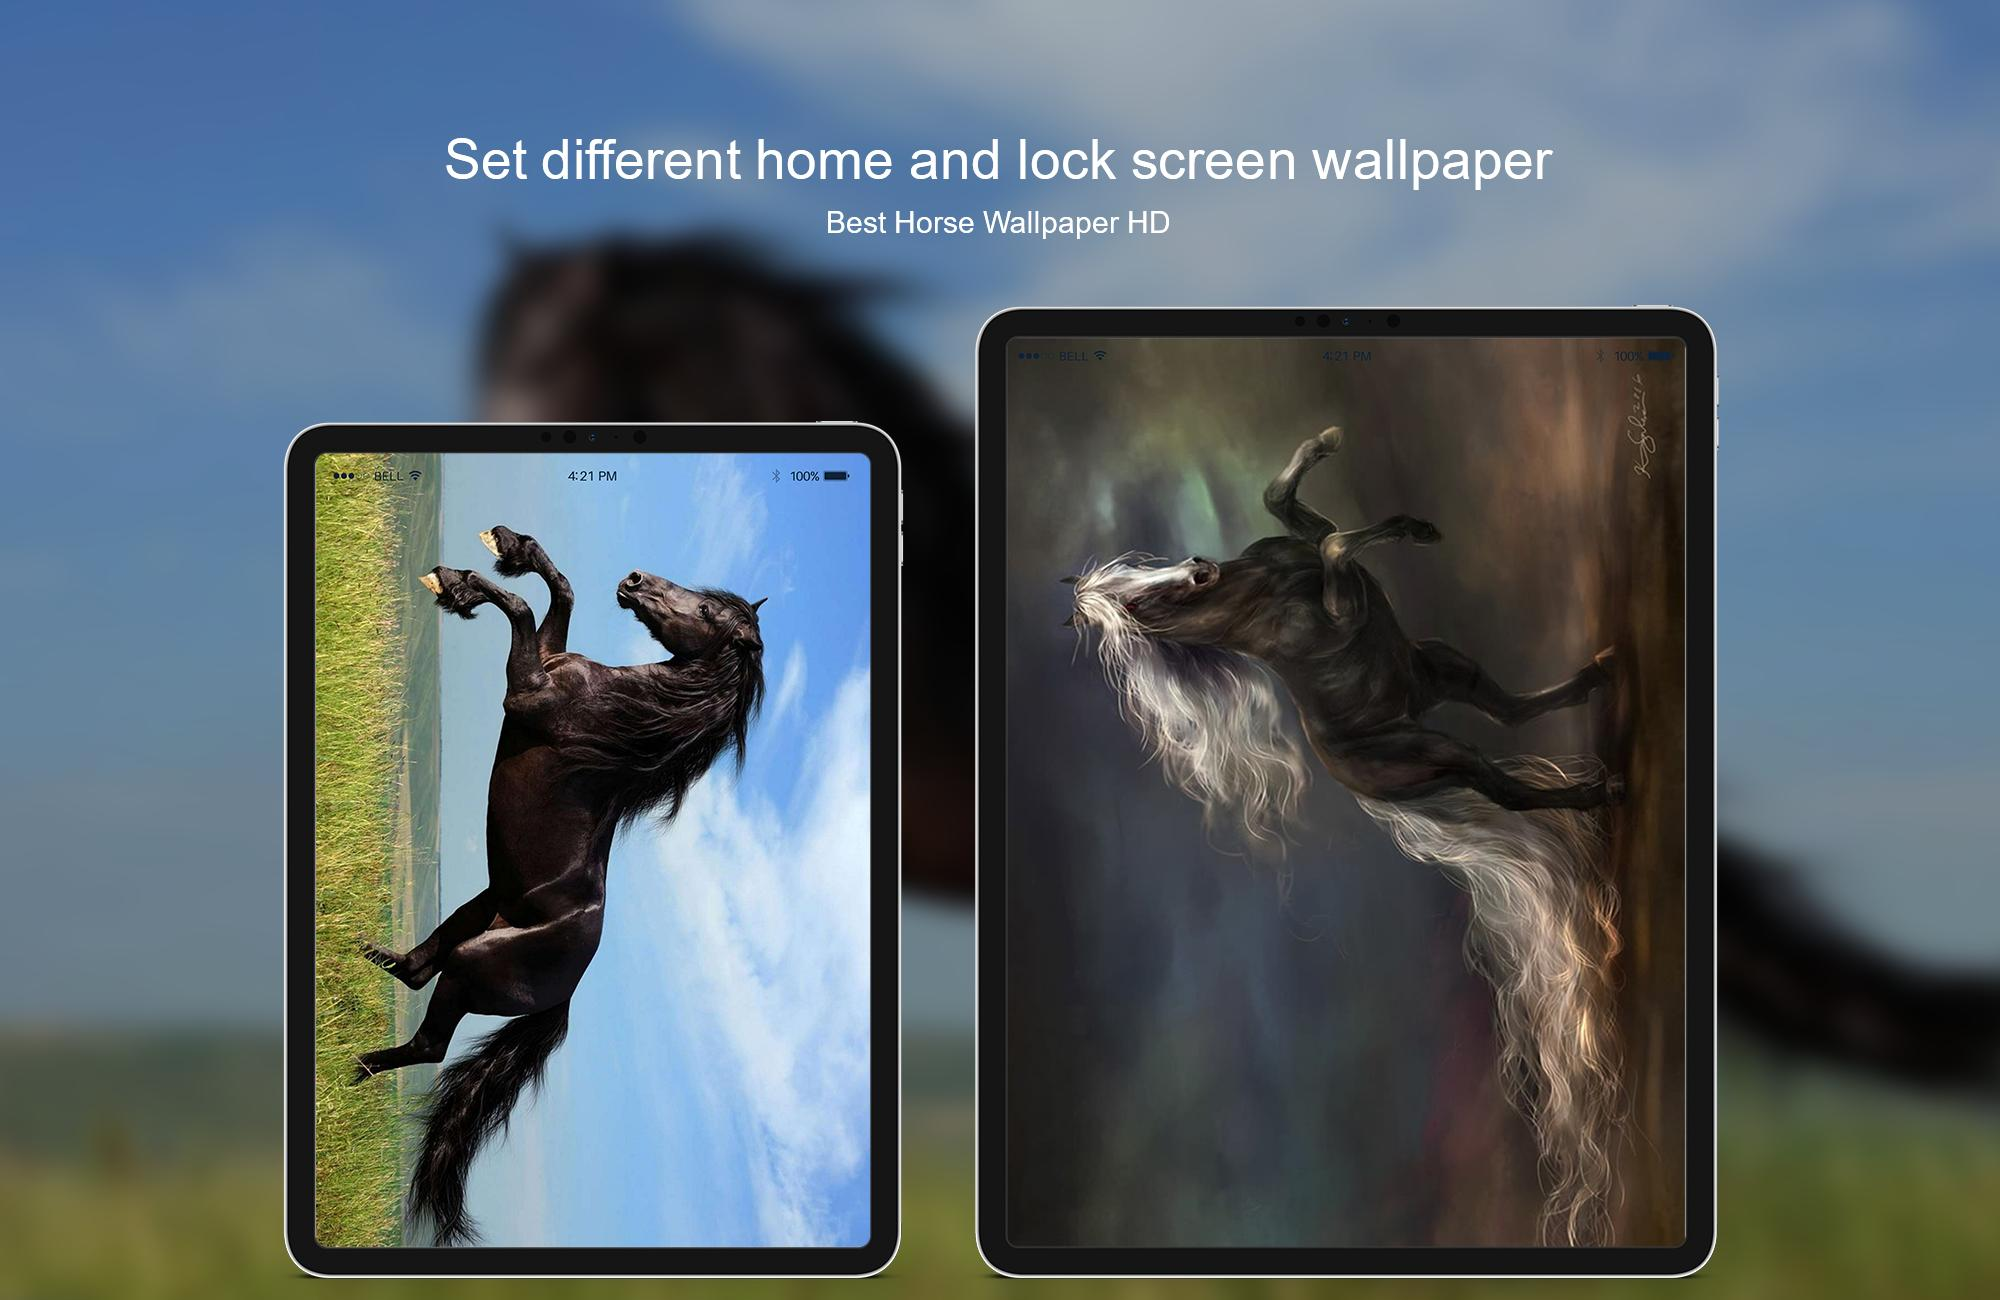 Best Horse Wallpaper Hd For Android Apk Download